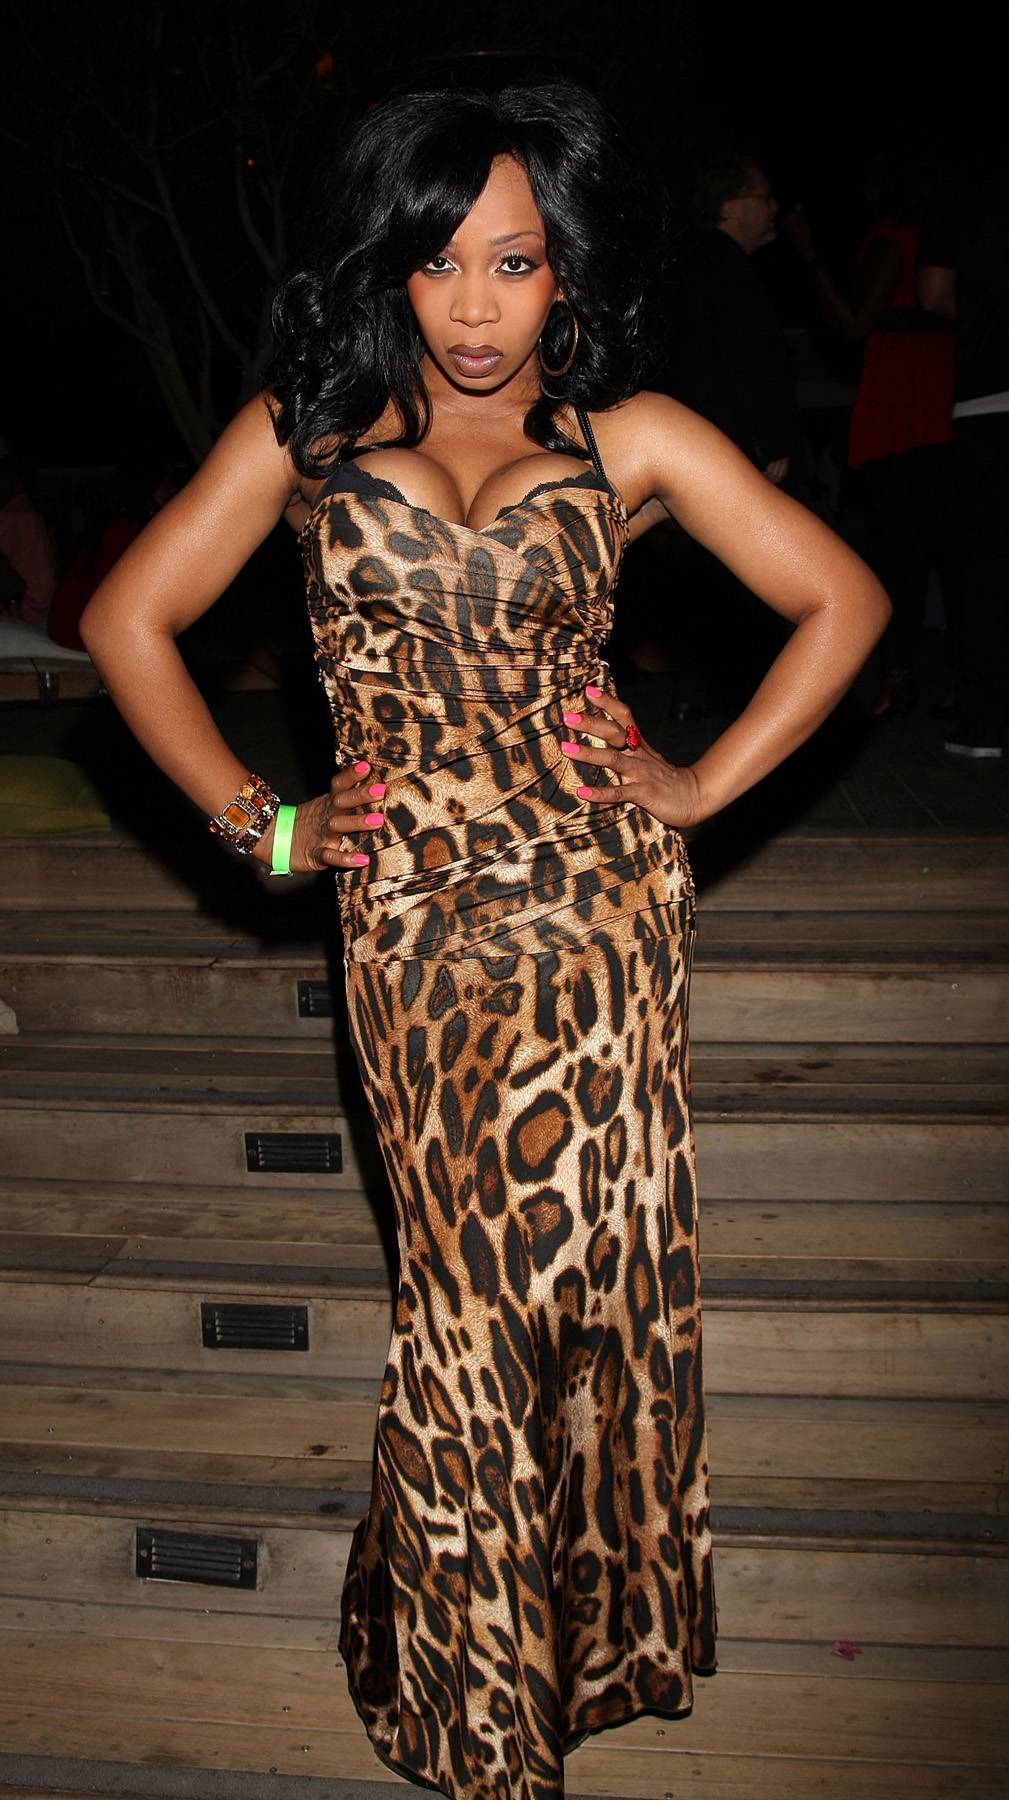 2. Tiffany Pollard (New York) - So, Tiffany Pollard might be more than an OG. Heck, she might even be considered a blueprint to the modern reality series genre. Not only did she make a splash on Flavor of Love, she got her own spin-off series that lasted two seasons.(Photo: Arnold Turner/WireImage)